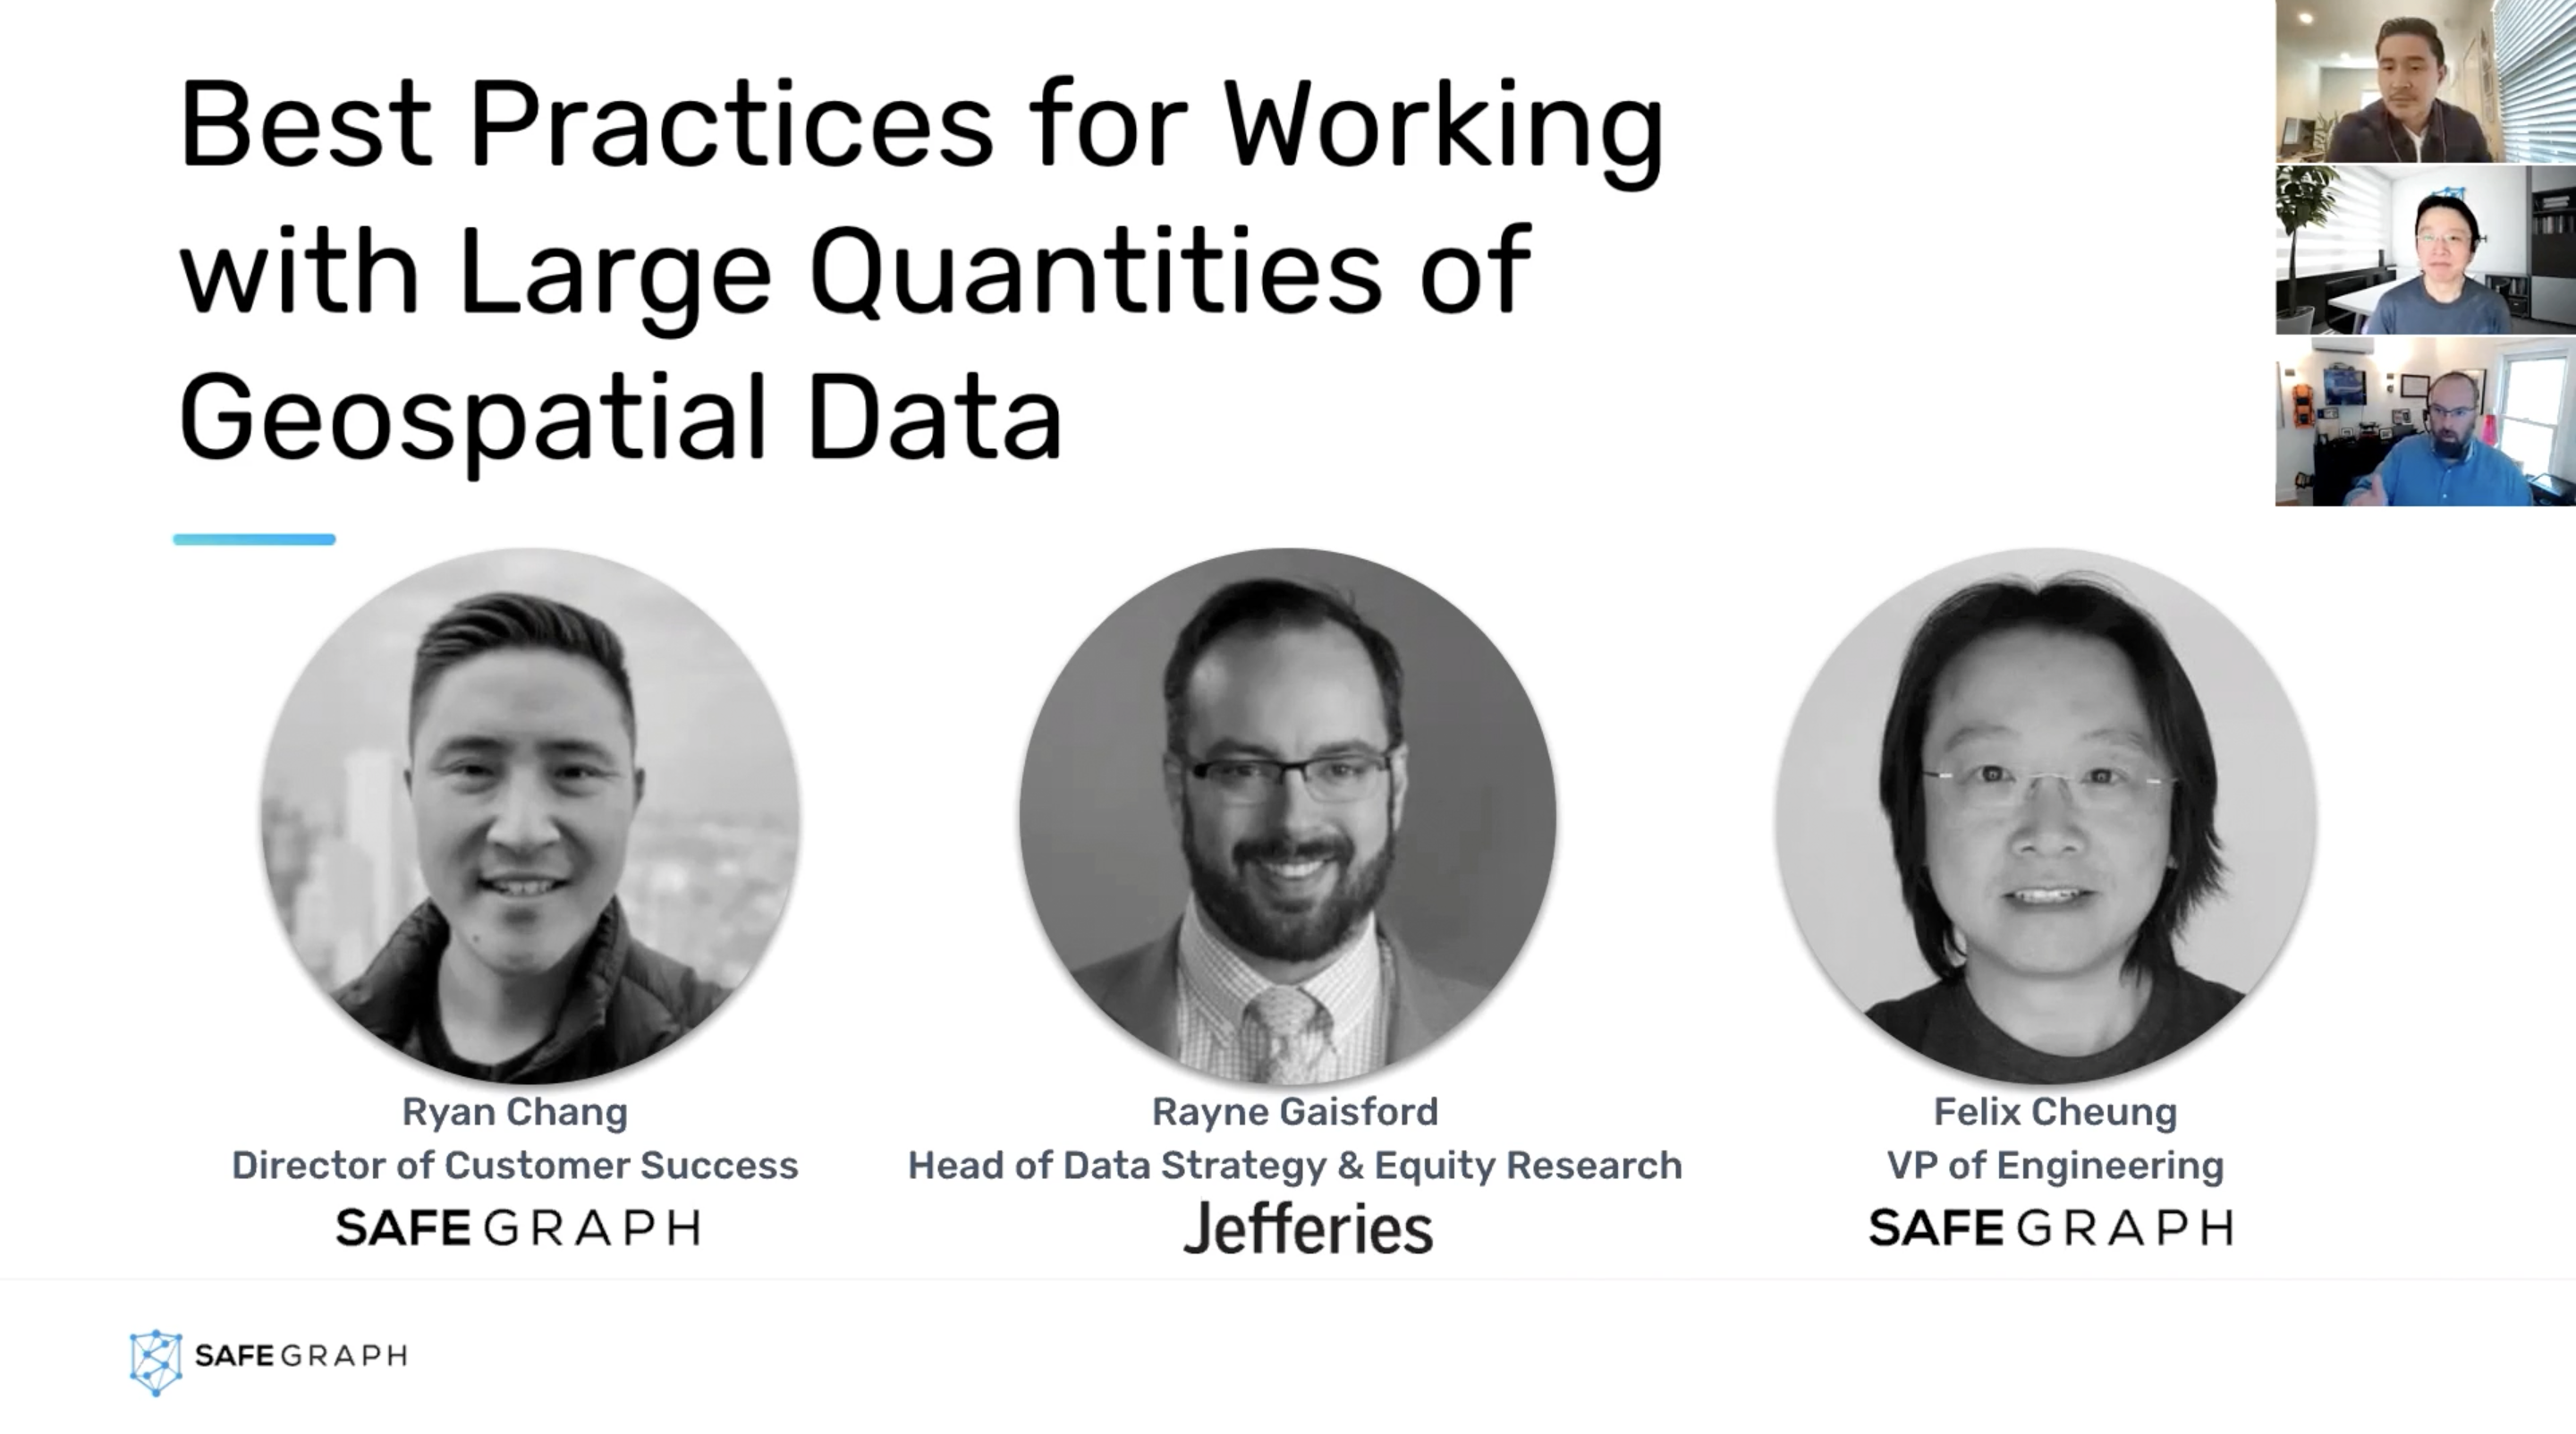 Data leaders from Jefferies and SafeGraph explain the best practices for working with large quantities of geospatial data.